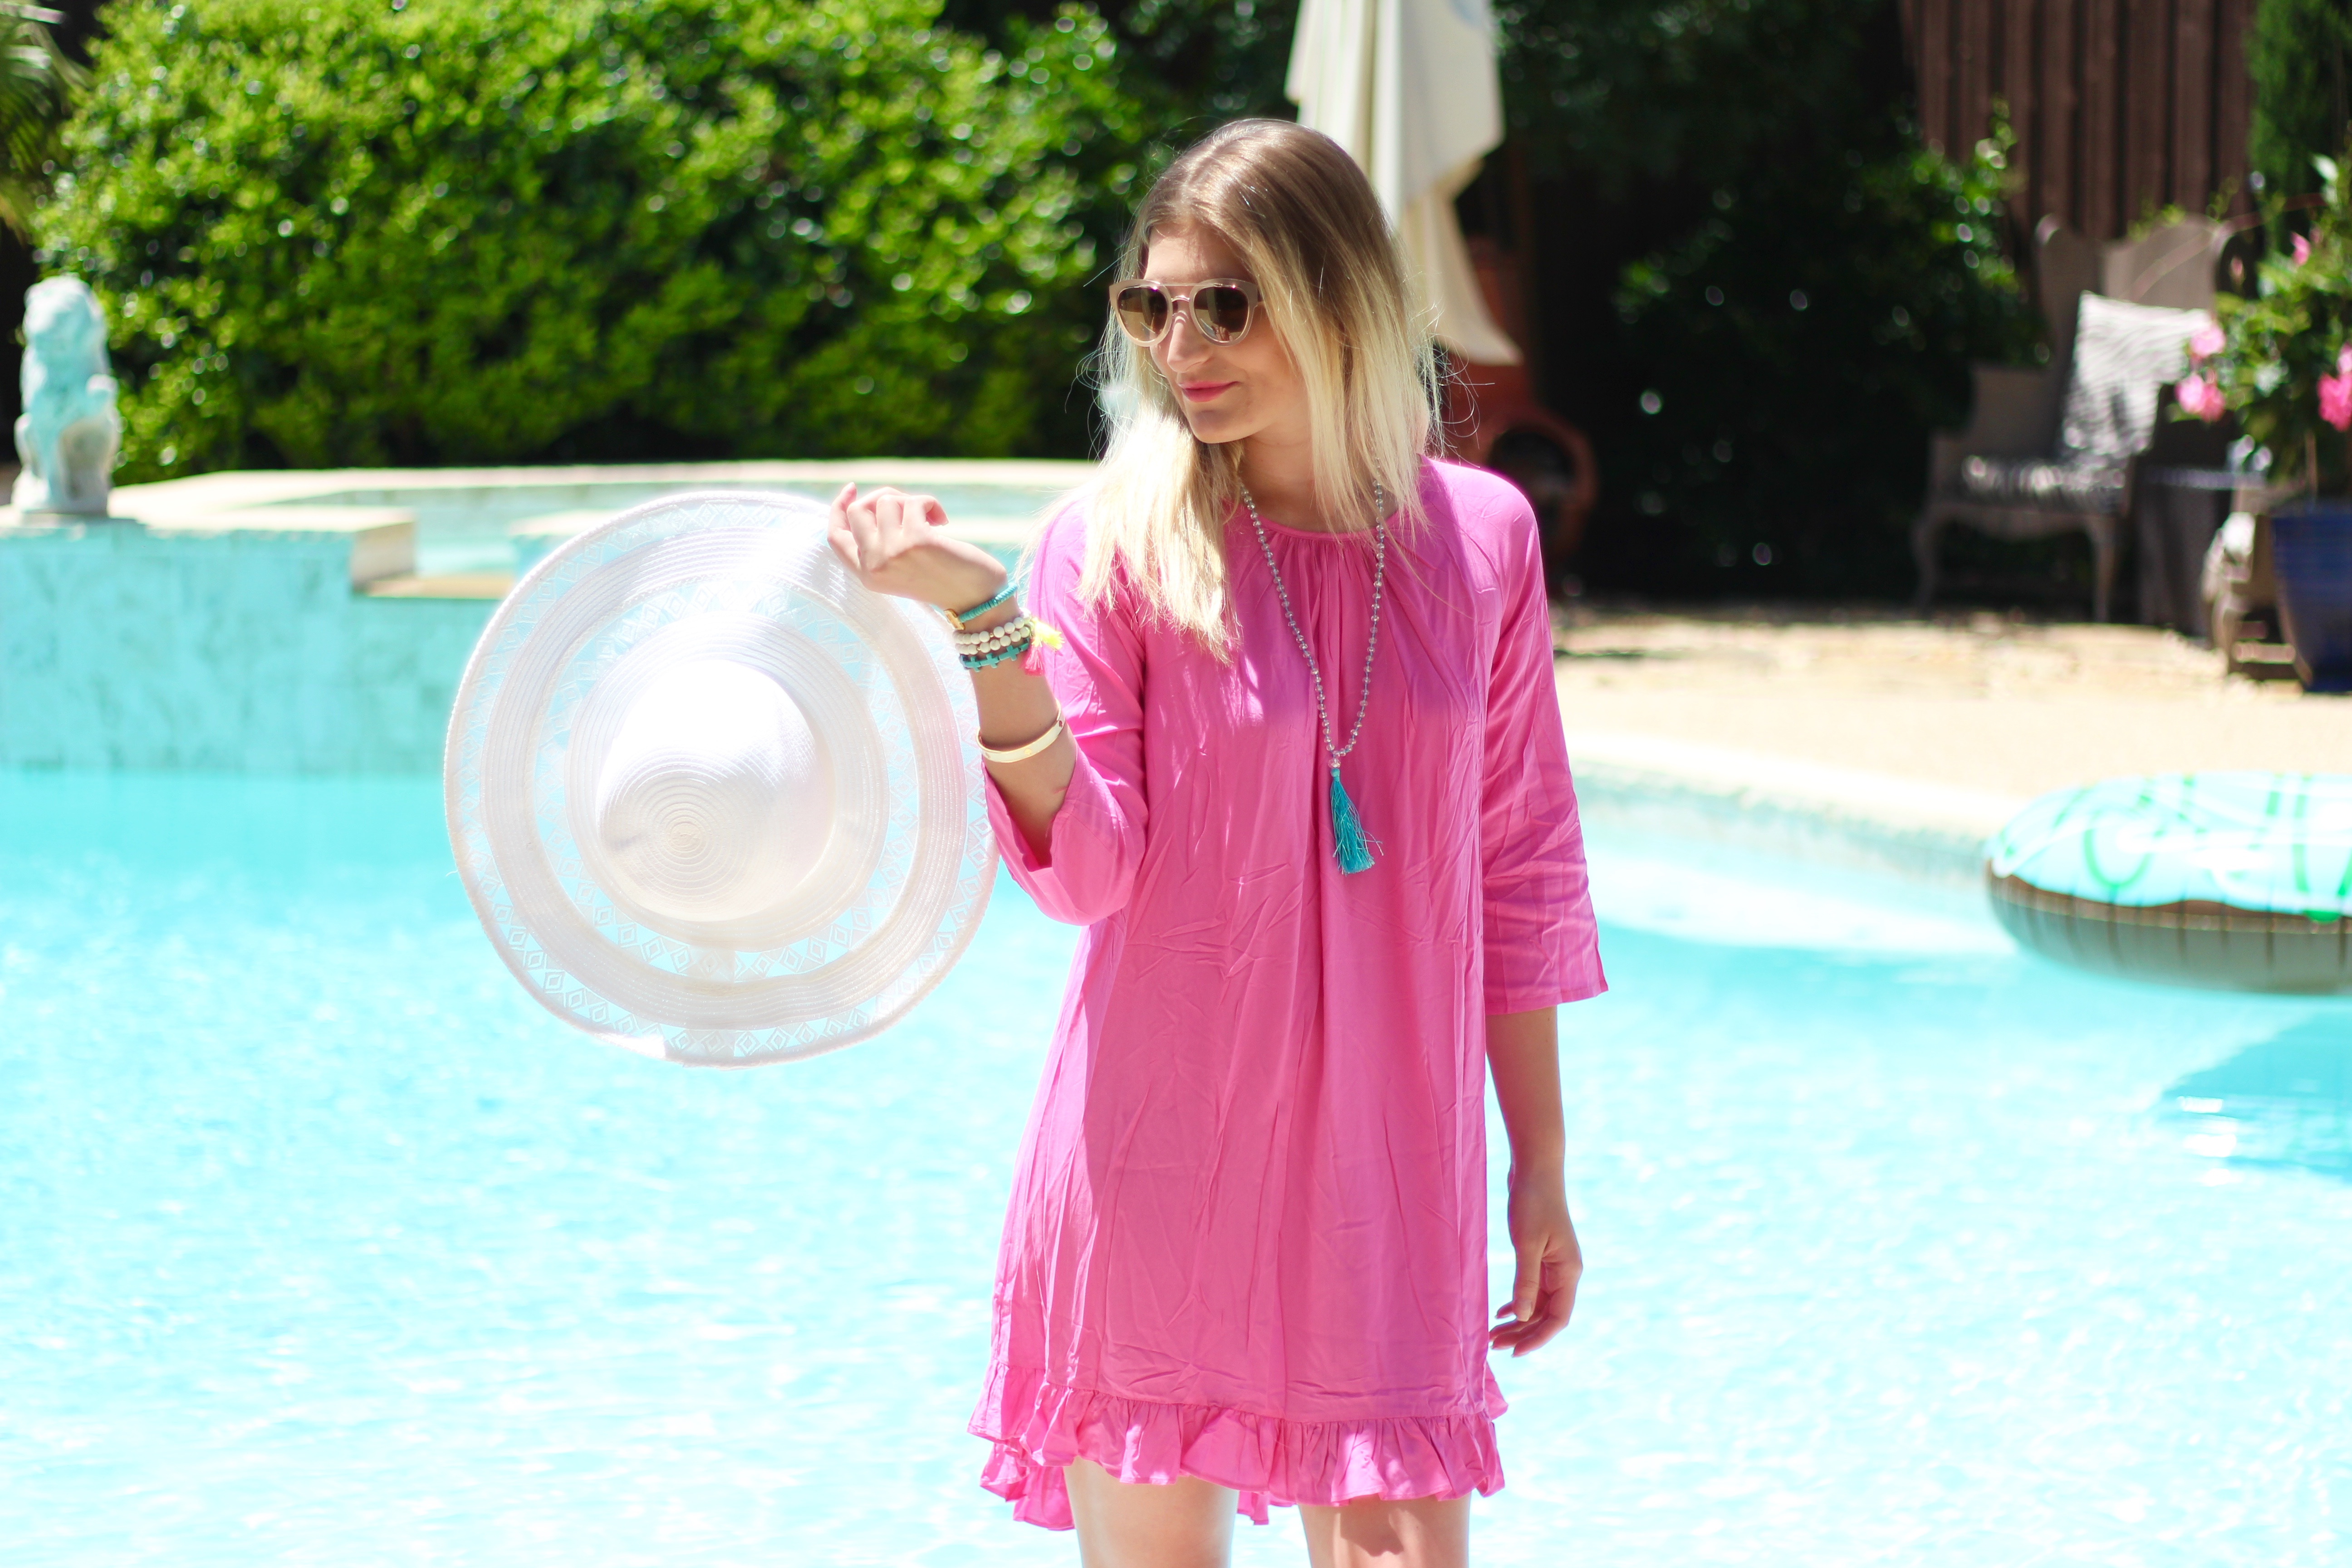 affordable summer coverup with tassels | Audrey Madison Stowe Blog